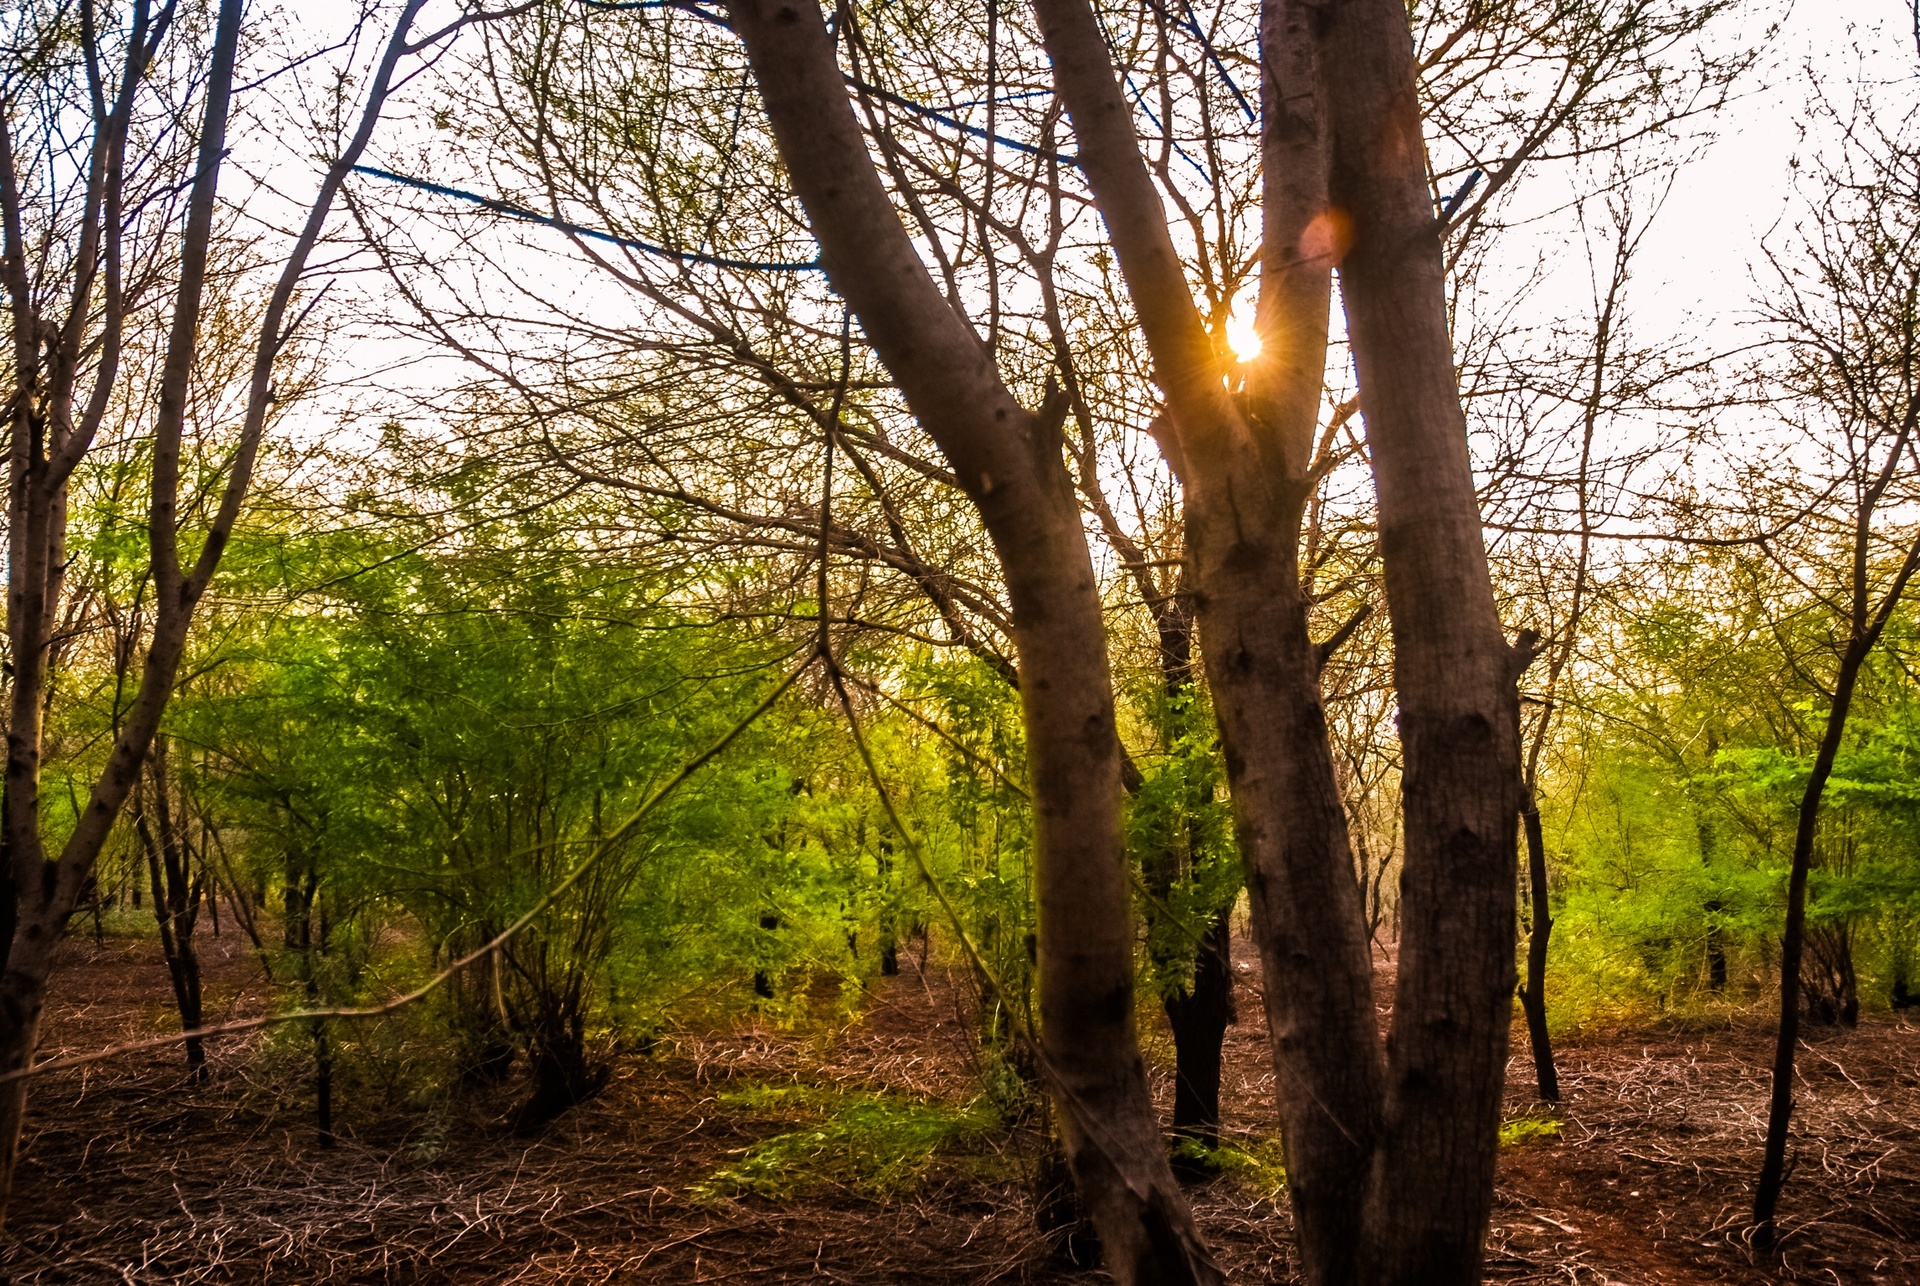 View of forest | nature, photography, color image, horizontal